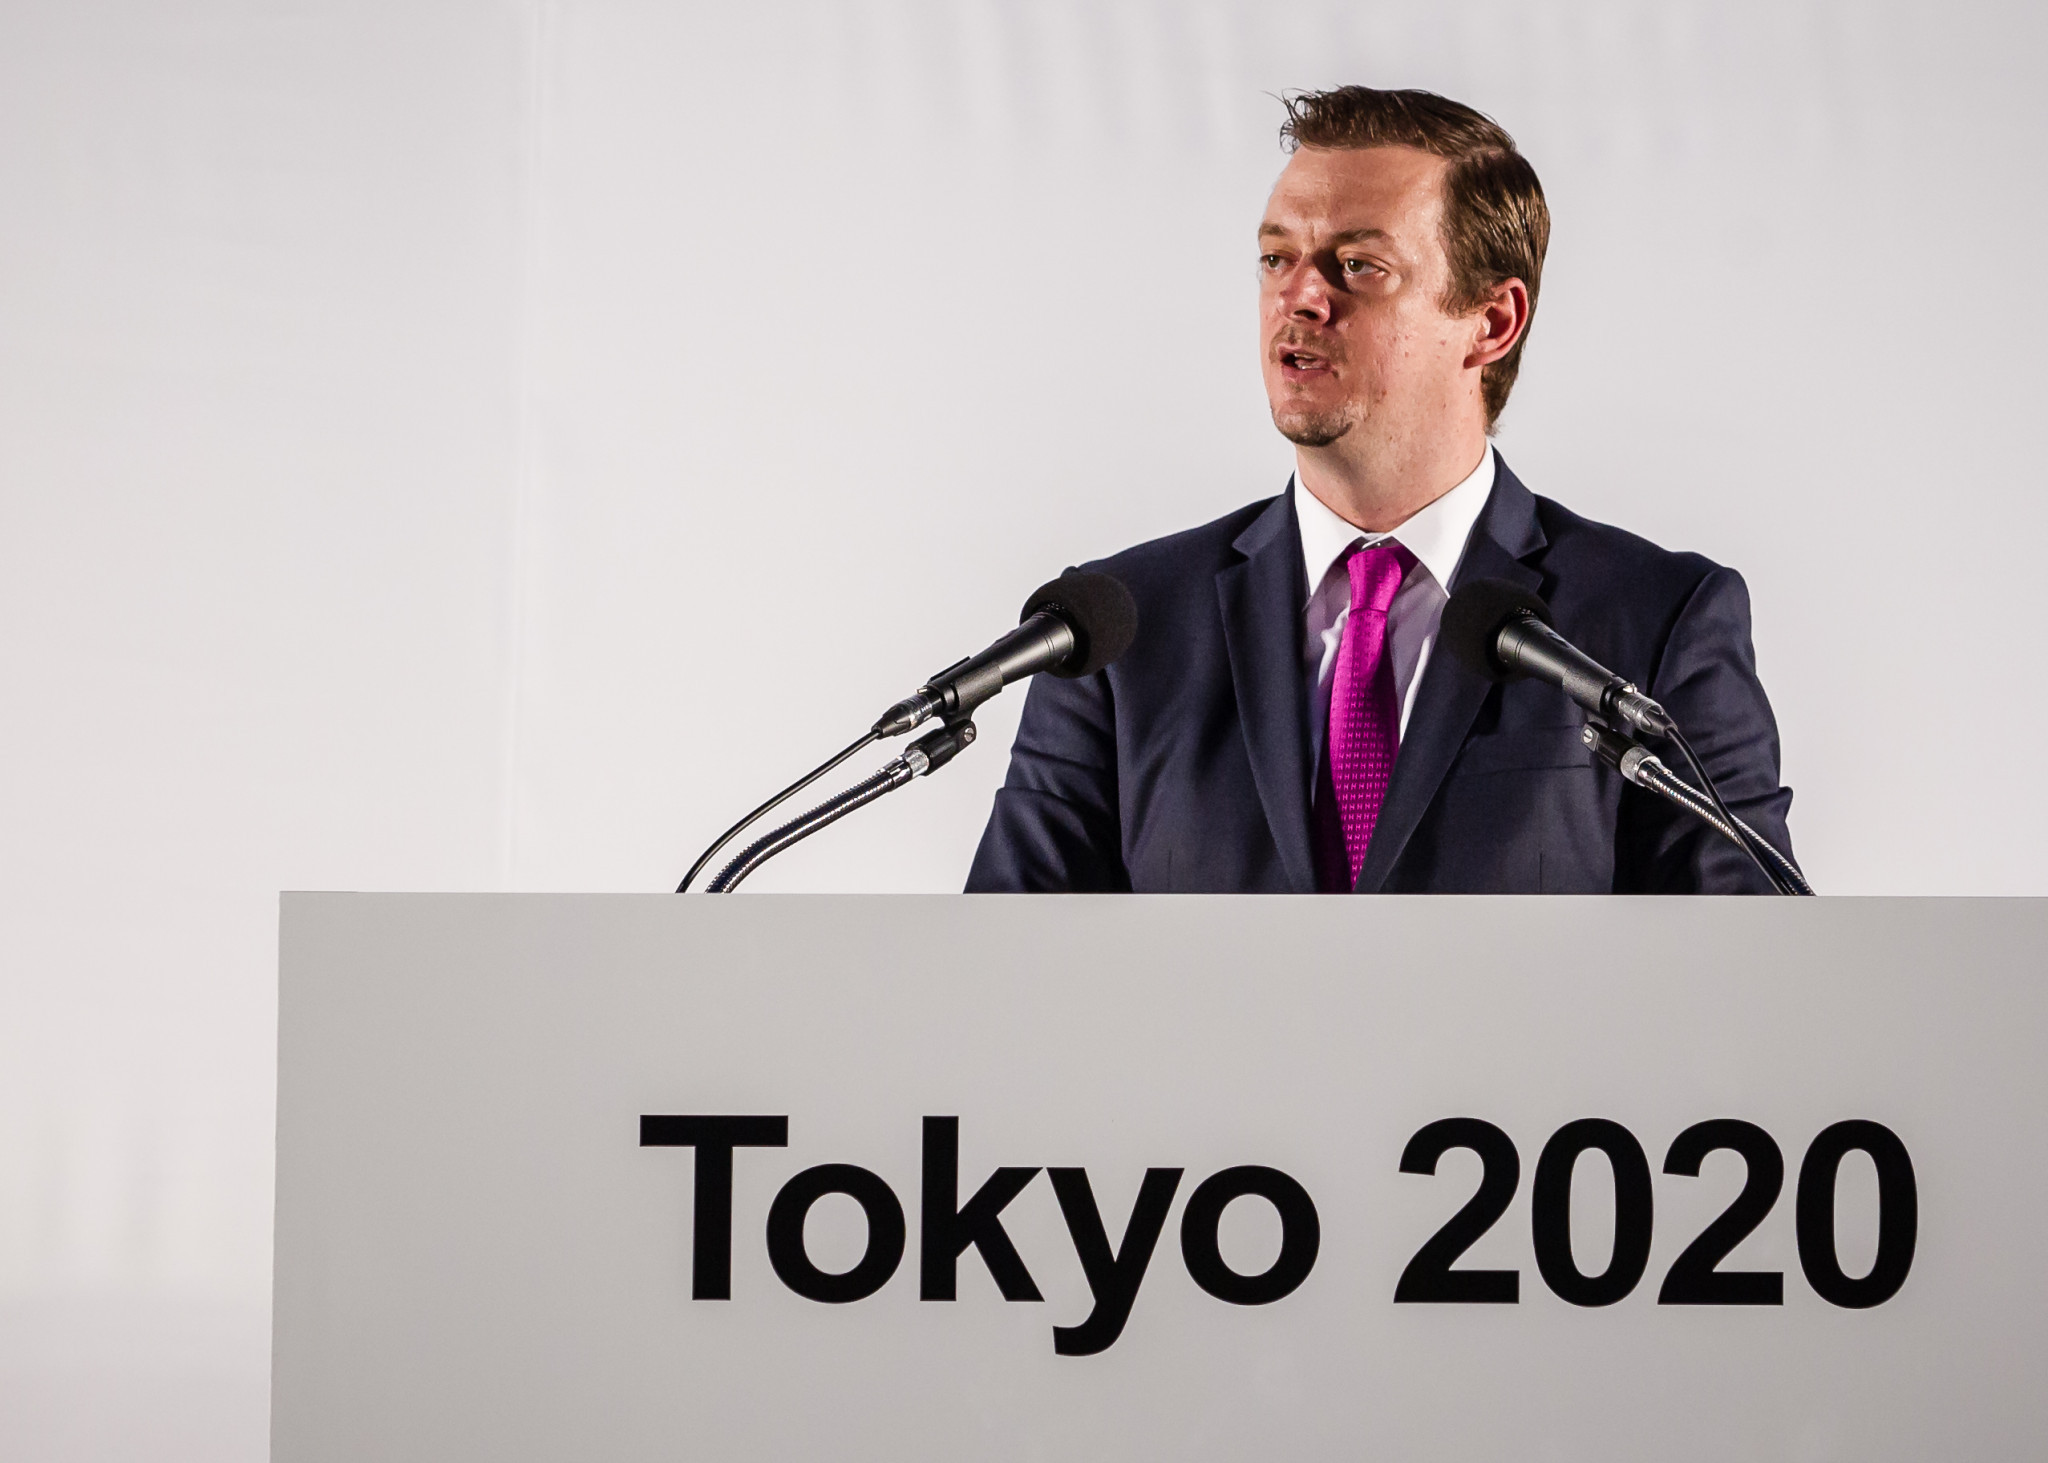 Parsons hopeful Tokyo 2020 Paralympic Games budget will be finalised imminently